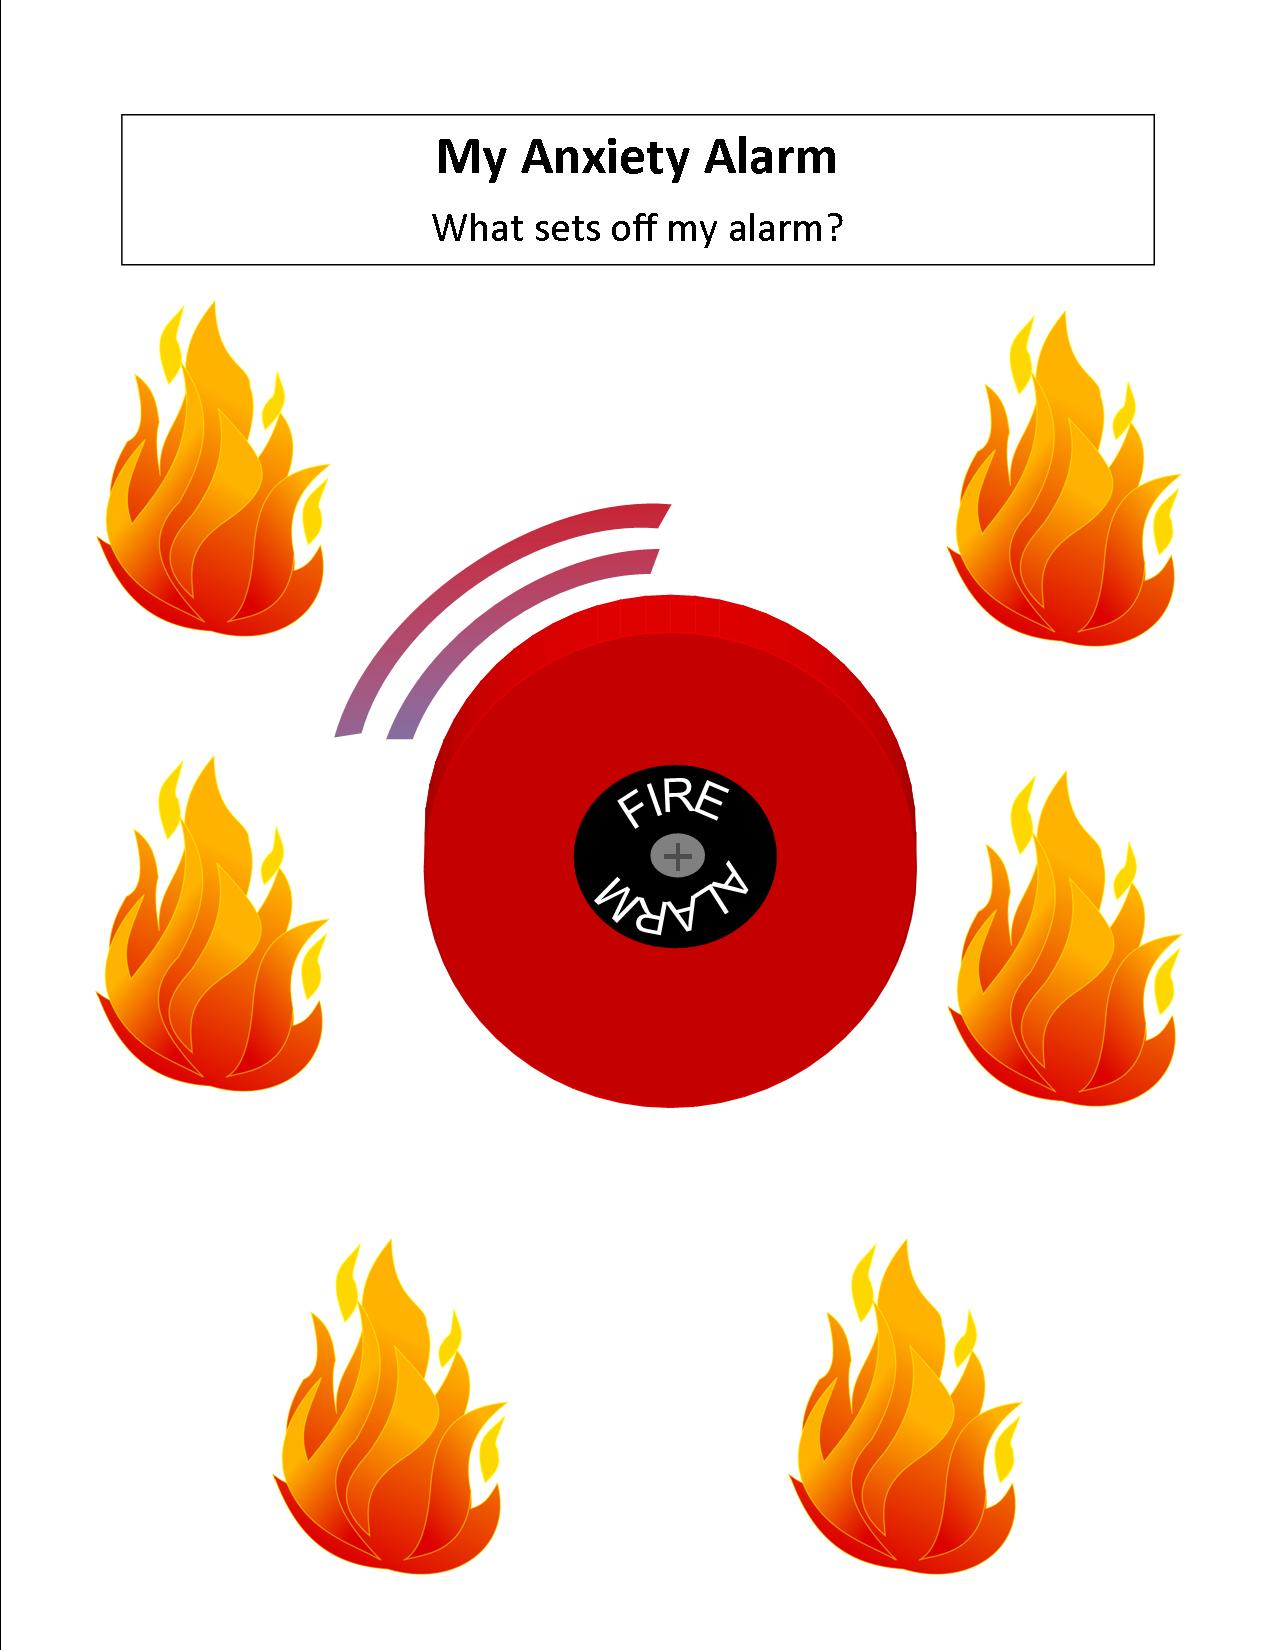 My Anxiety Alarm Worksheet For Kids